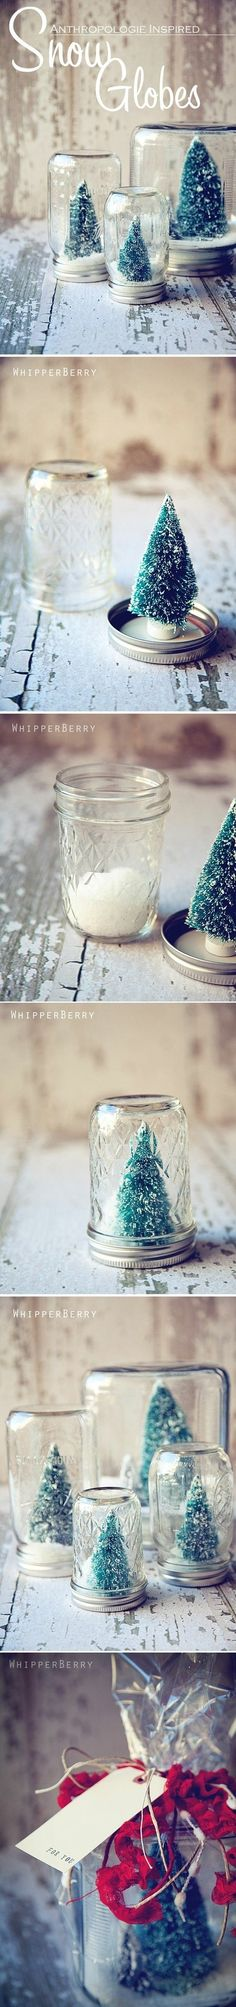 Make snow globes out of jars.